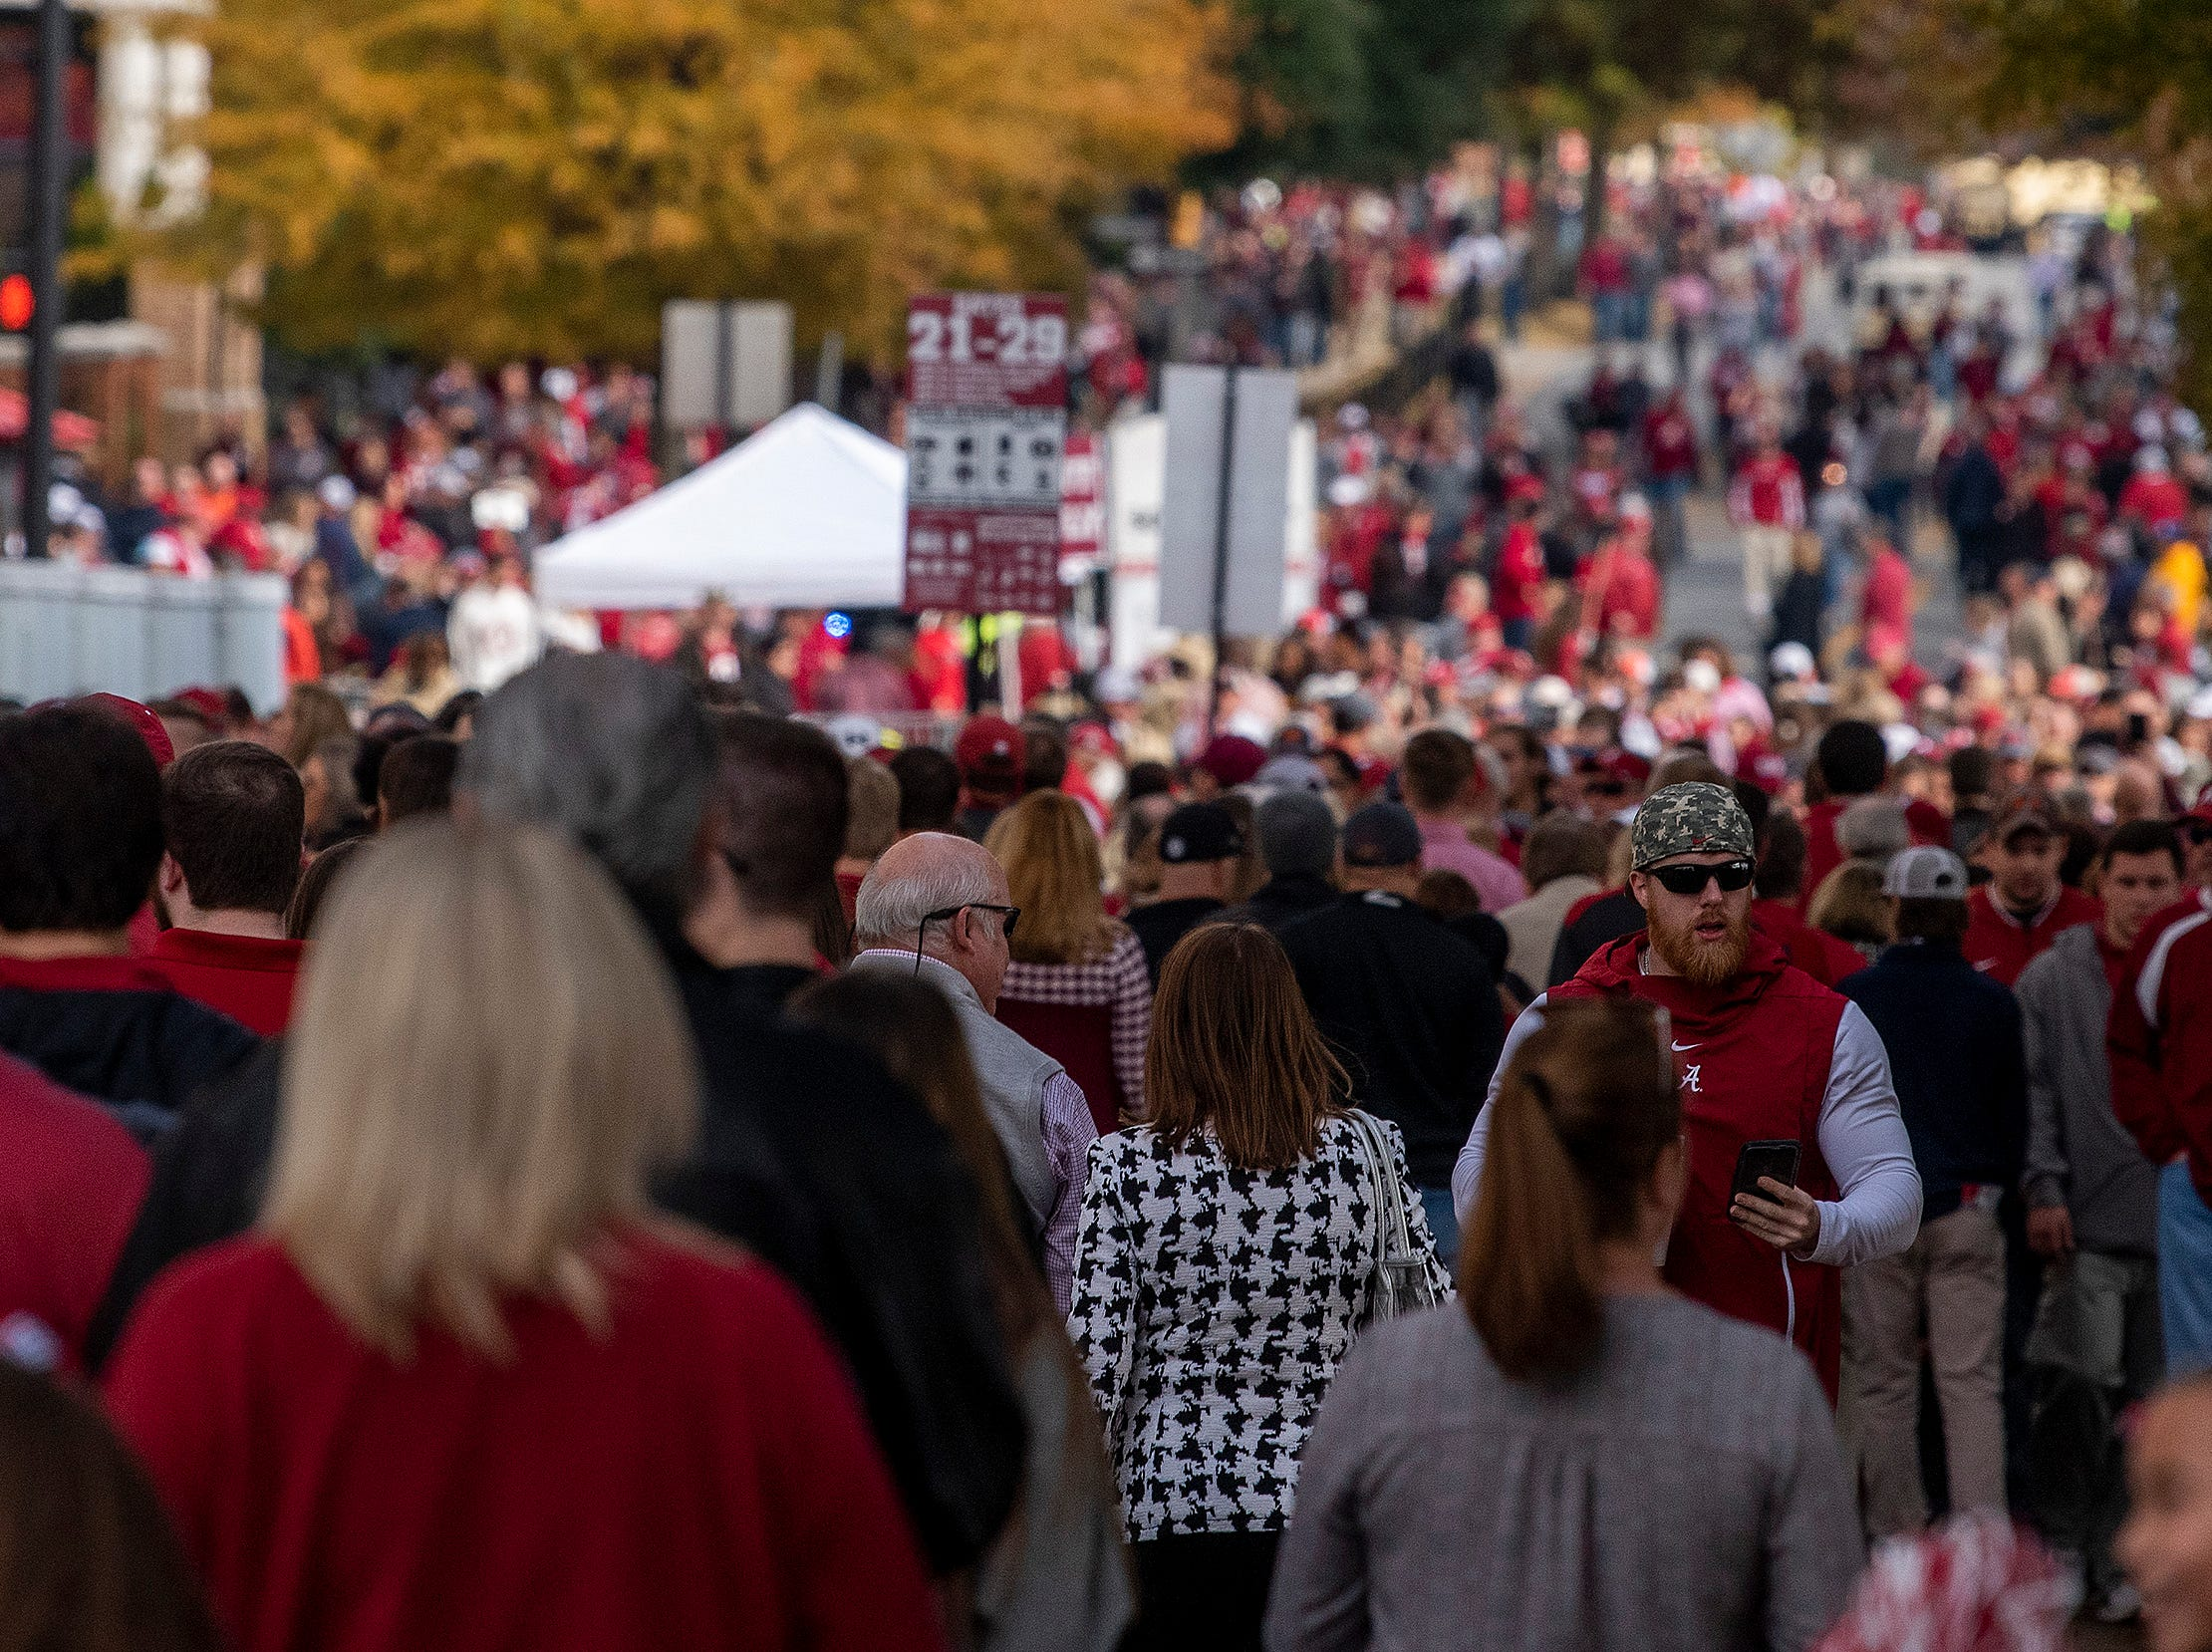 Fans flow into Bryant-Denny Stadium before the Iron Bowl in Tuscaloosa, Ala., on Saturday November 24, 2018.